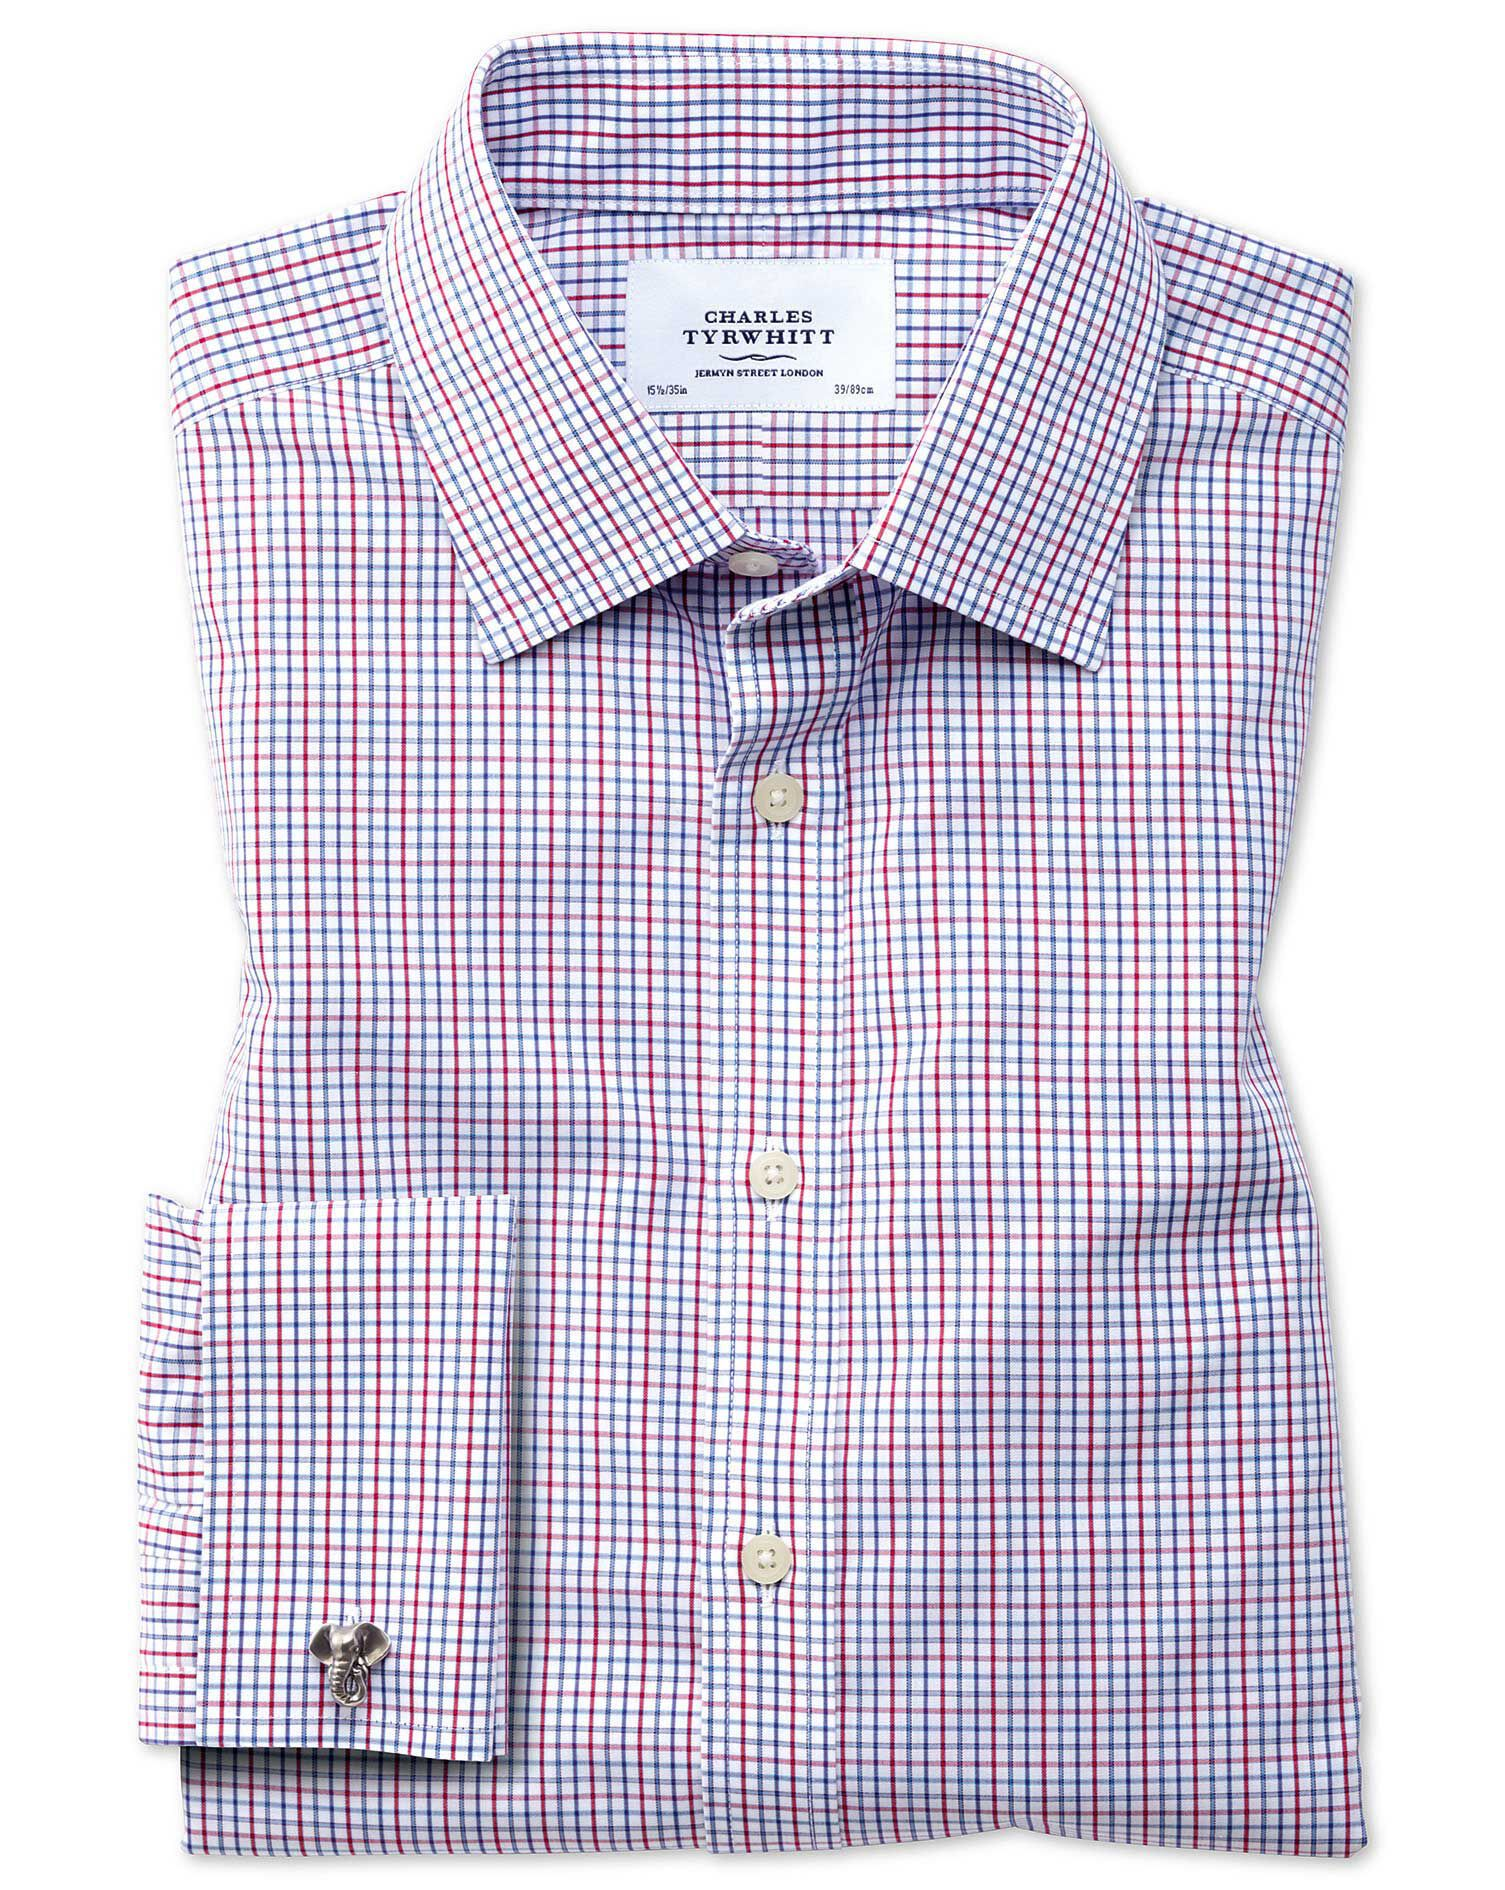 Slim Fit Non-Iron Multi Grid Check Cotton Formal Shirt Double Cuff Size 15/32 by Charles Tyrwhitt